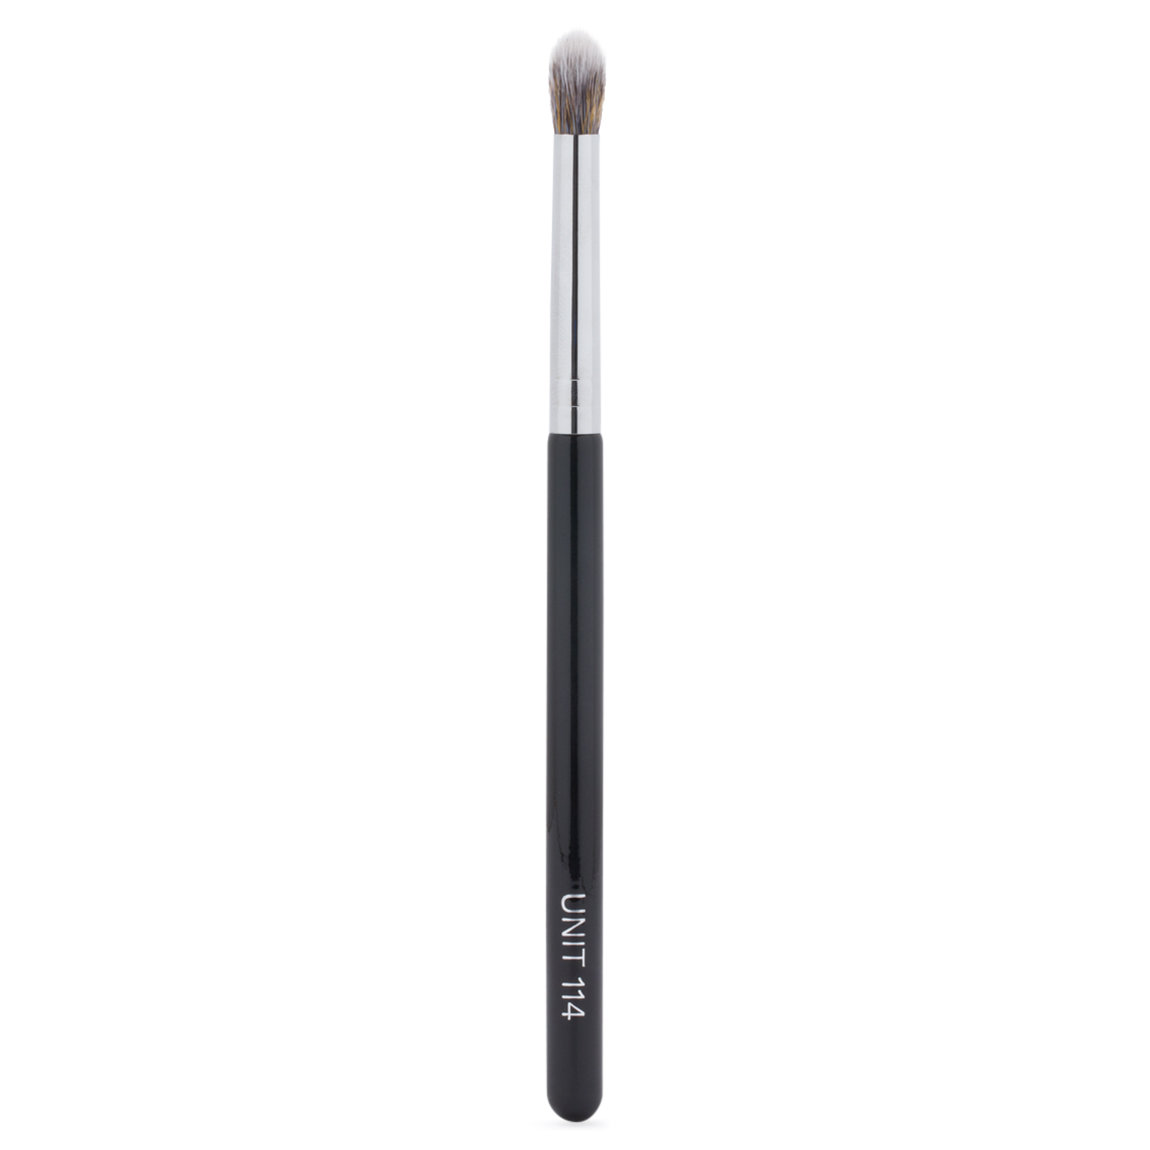 UNIT 114 Eye Brush